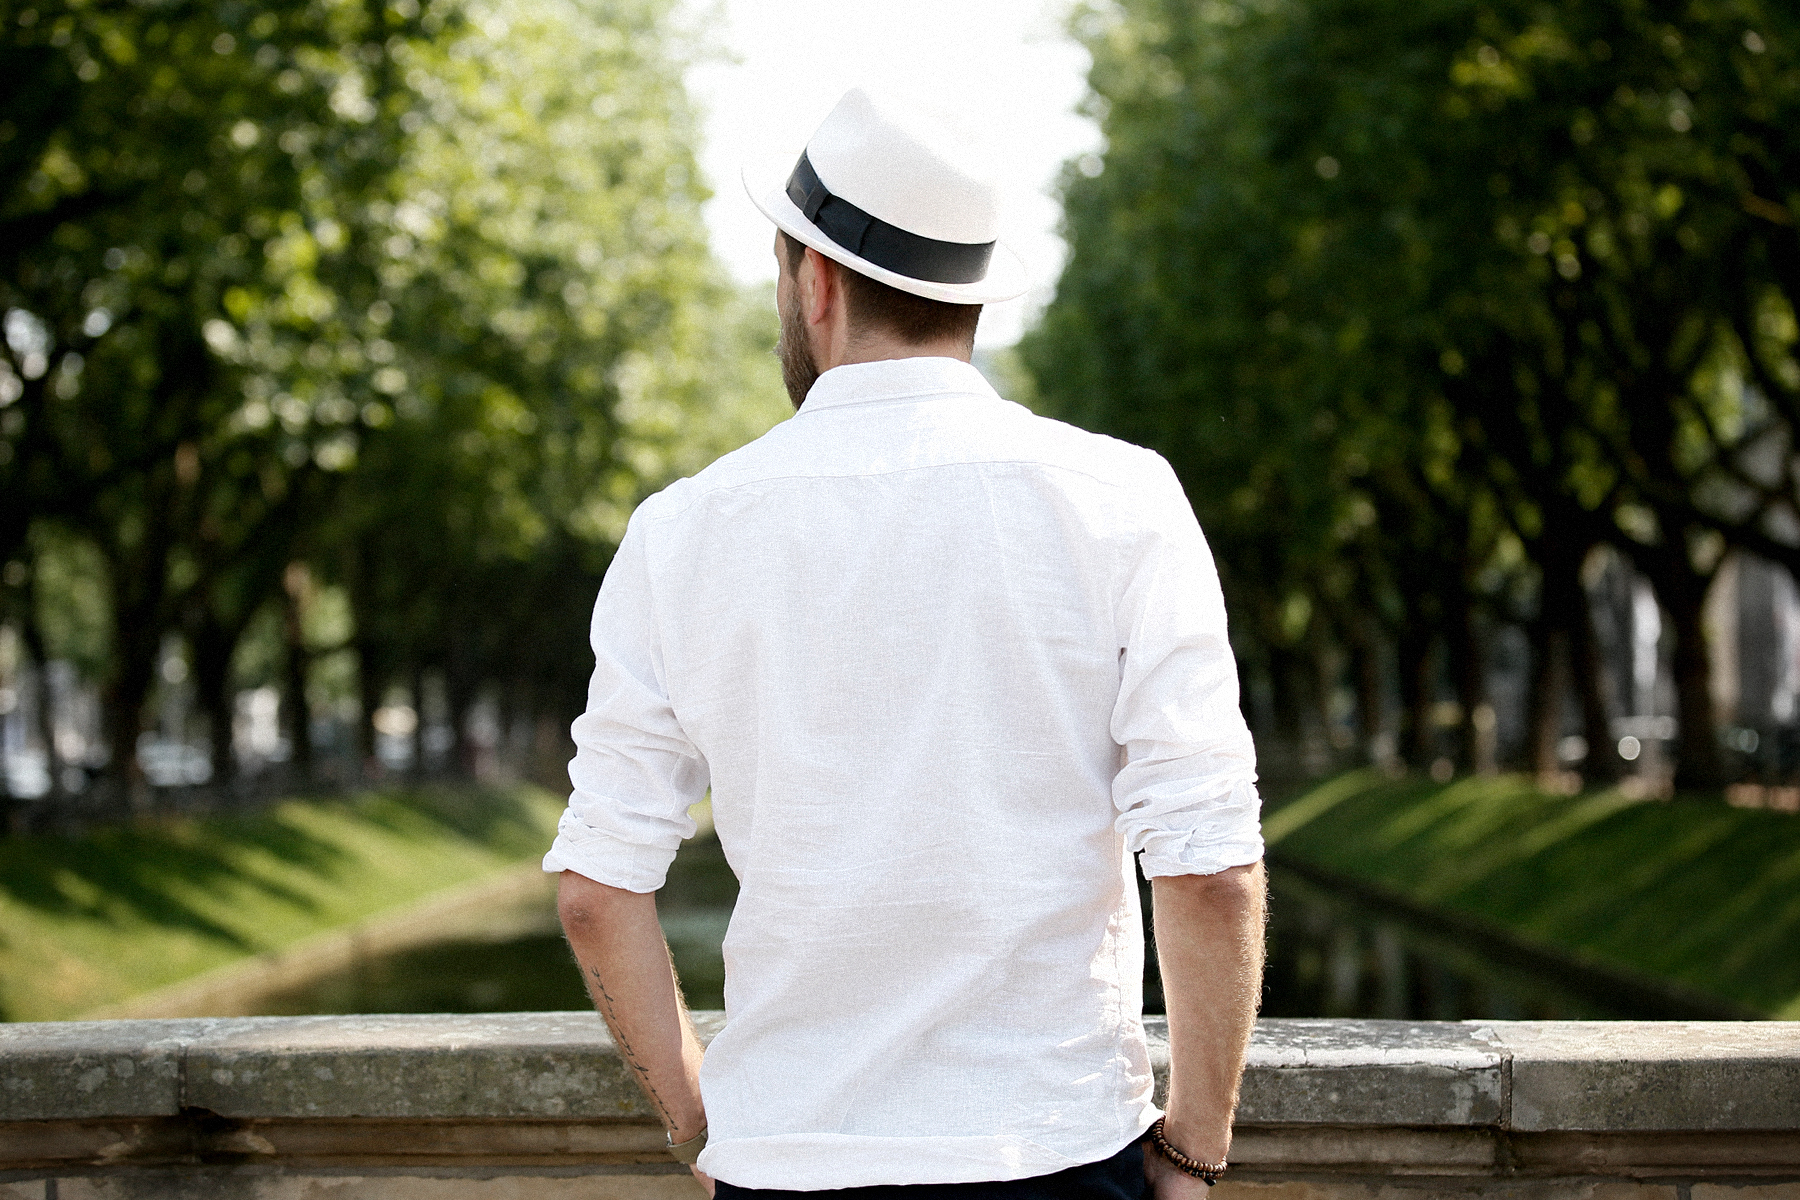 outfit white summer chic business sporty hat stetson zara man linen shirt elegant menlook menfashion manfashion beardedmen mann mit bart sacha schuhe leder schnürschuhe leather boots max bechmann style fashionblogger düsseldorf cats & dogs outfit 1